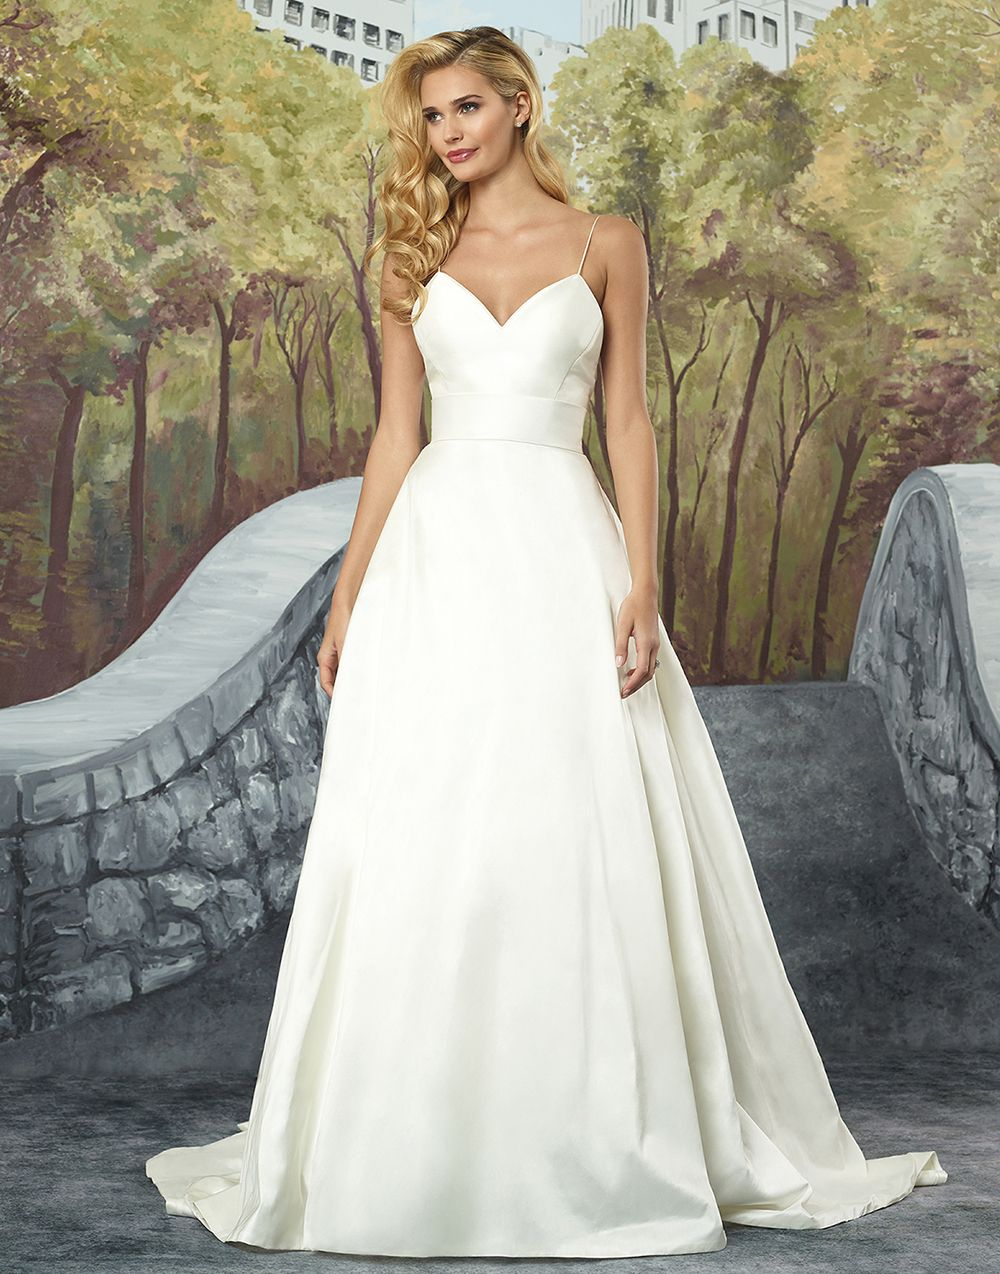 63e289a24 Justin Alexander wedding dresses style 8927 It all starts with a feeling. This  dramatic Silk Dupion ball gown has a deep V-neckline, delicate spaghetti ...